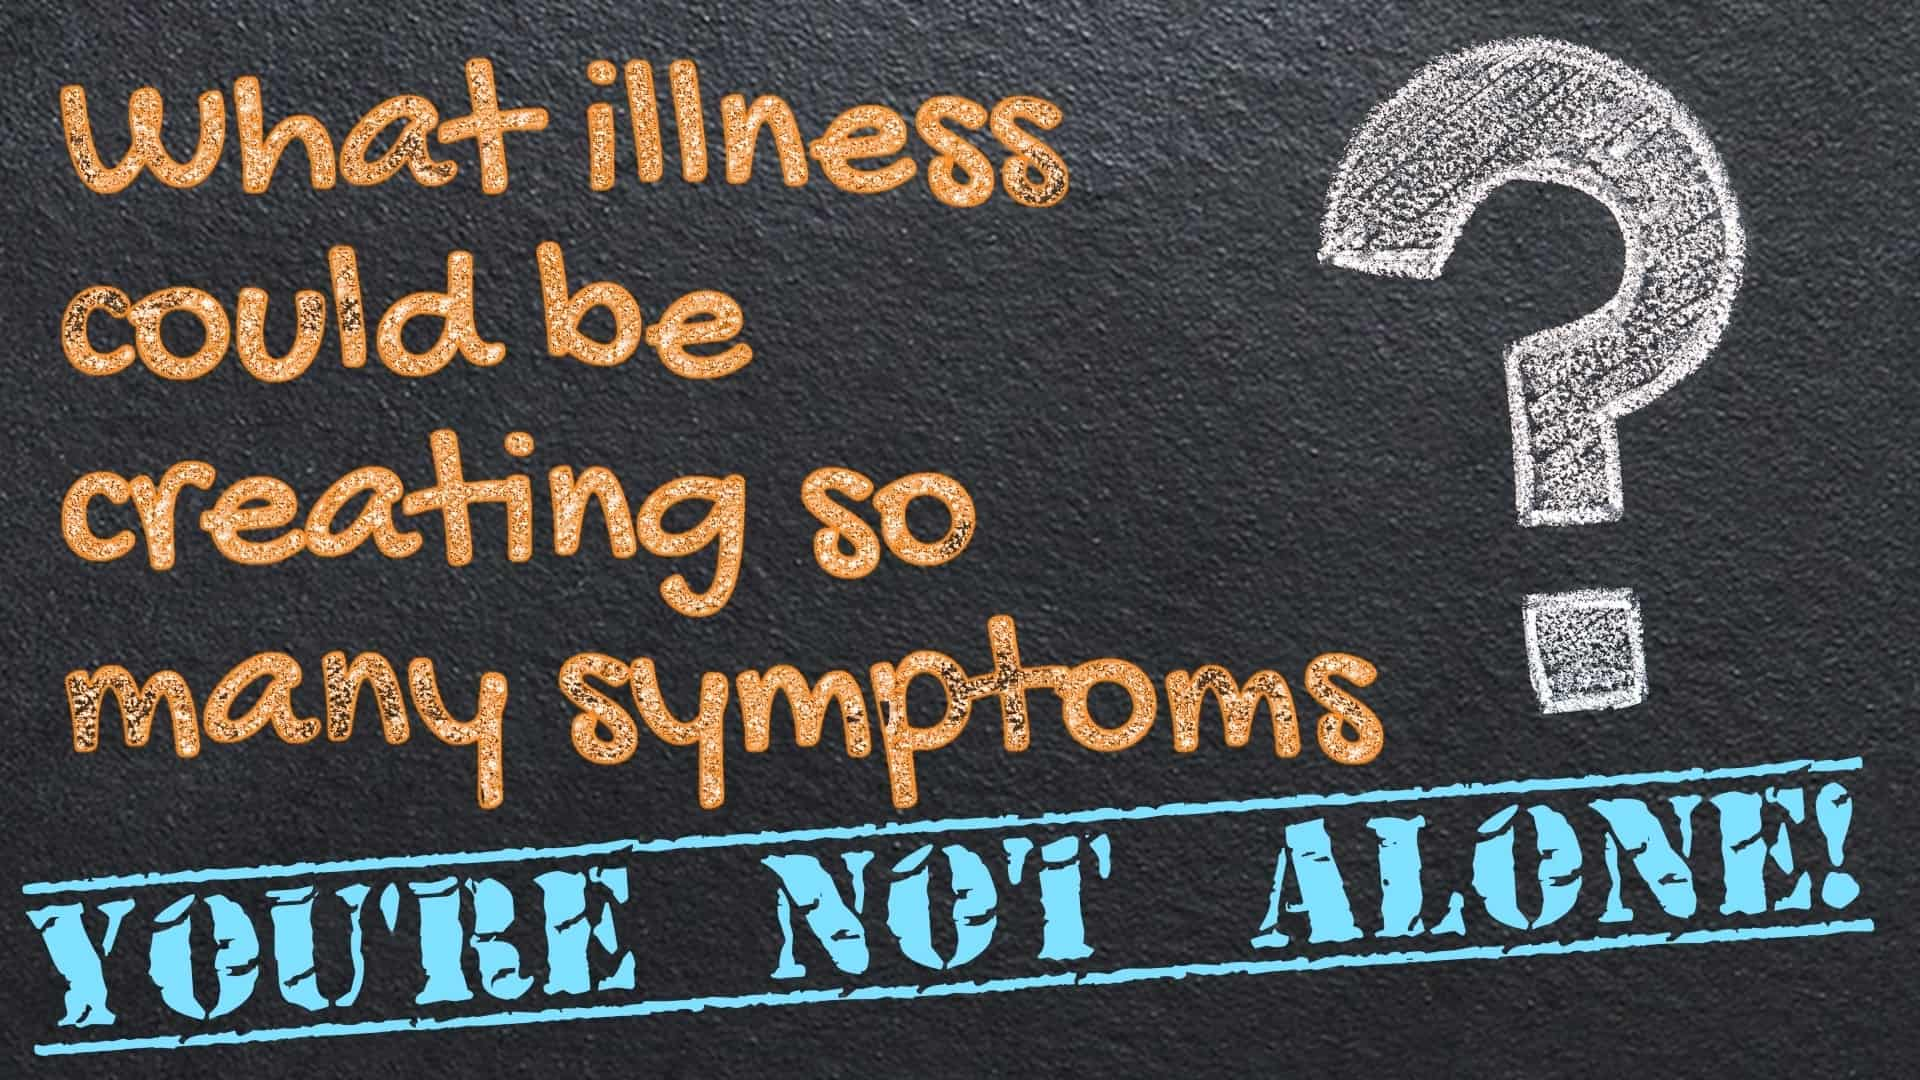 message written on blackboard saying What illness could be creating so many symptoms - You're Not Alone